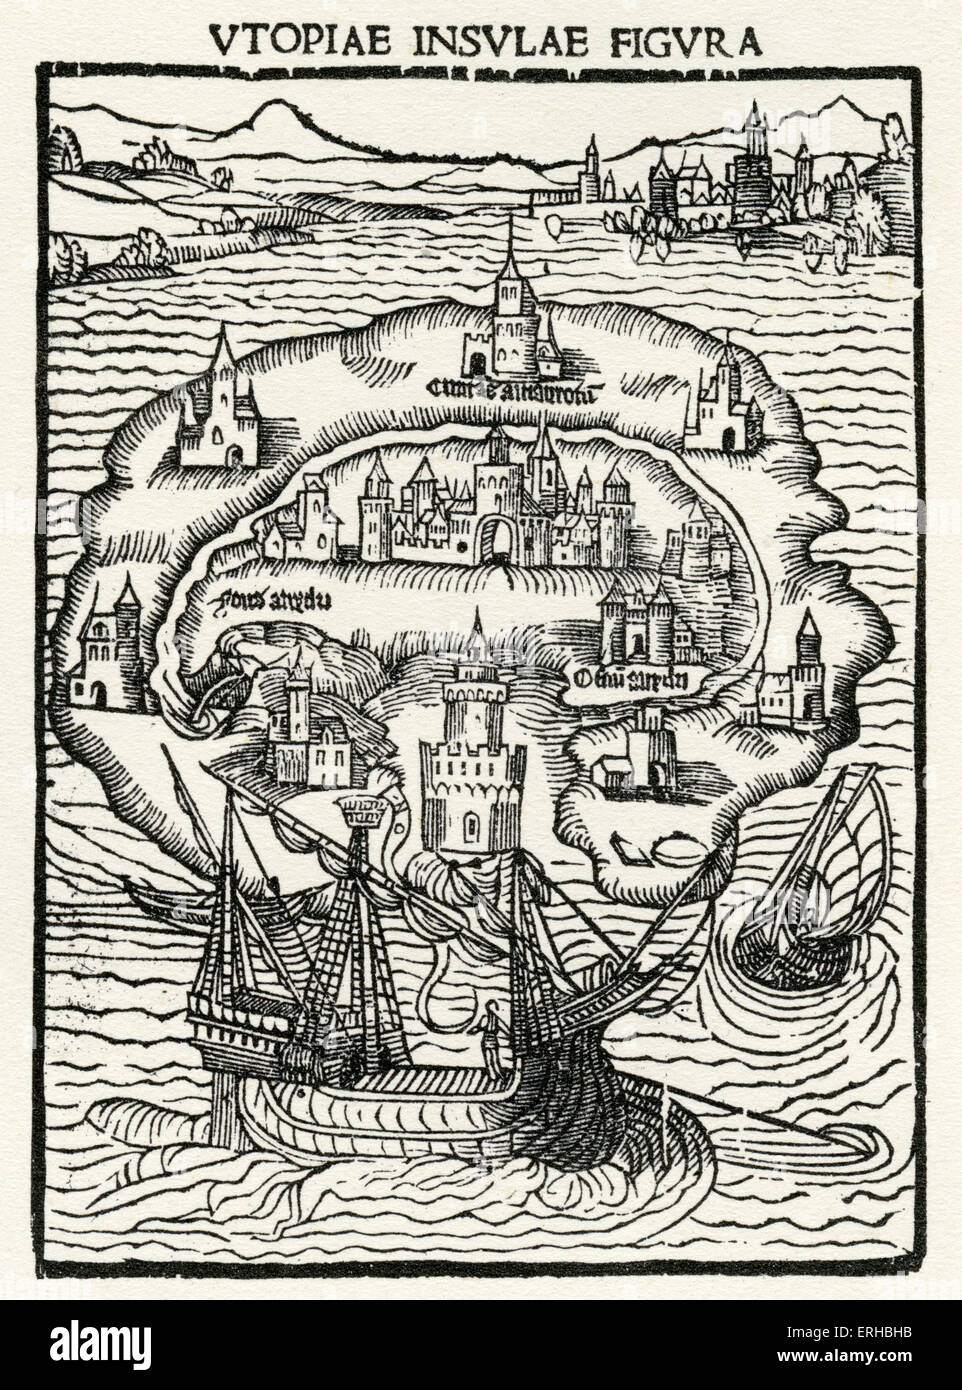 The Island of Utopia - from woodcut in Thomas More's Utopia. 1st edition, 1516 (Caption: Utopiae Insulae Figur - Stock Image